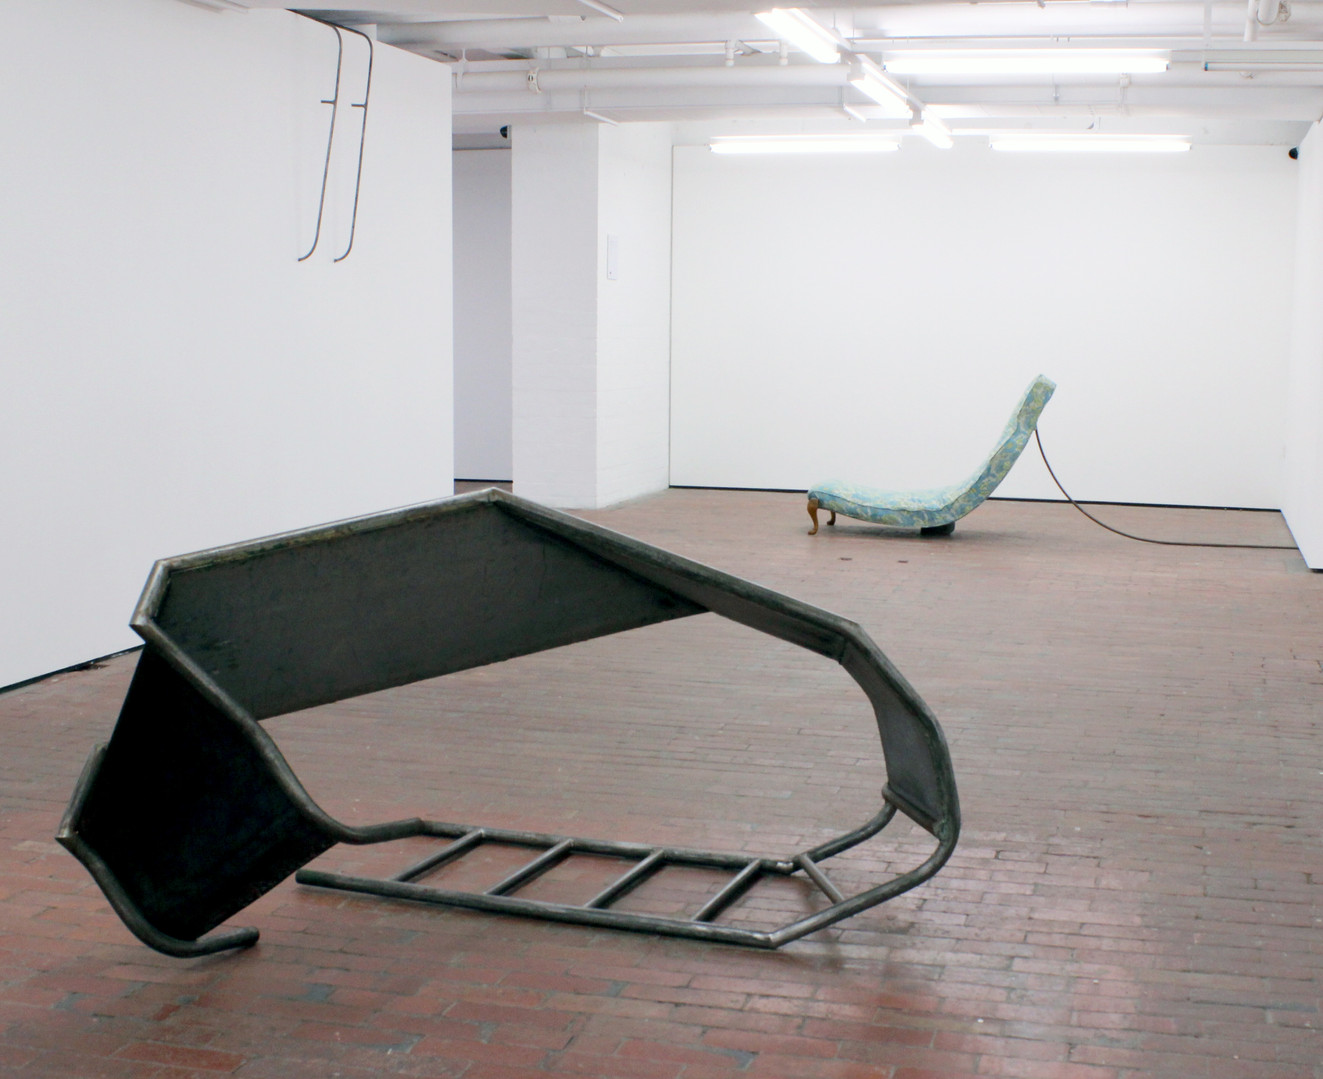 Slump, 2014.  C3 Artspace Abbotsford.  Welded steel, wood, upcycled fabric, copper. Dimensions variable.  Image courtesy of the Artist